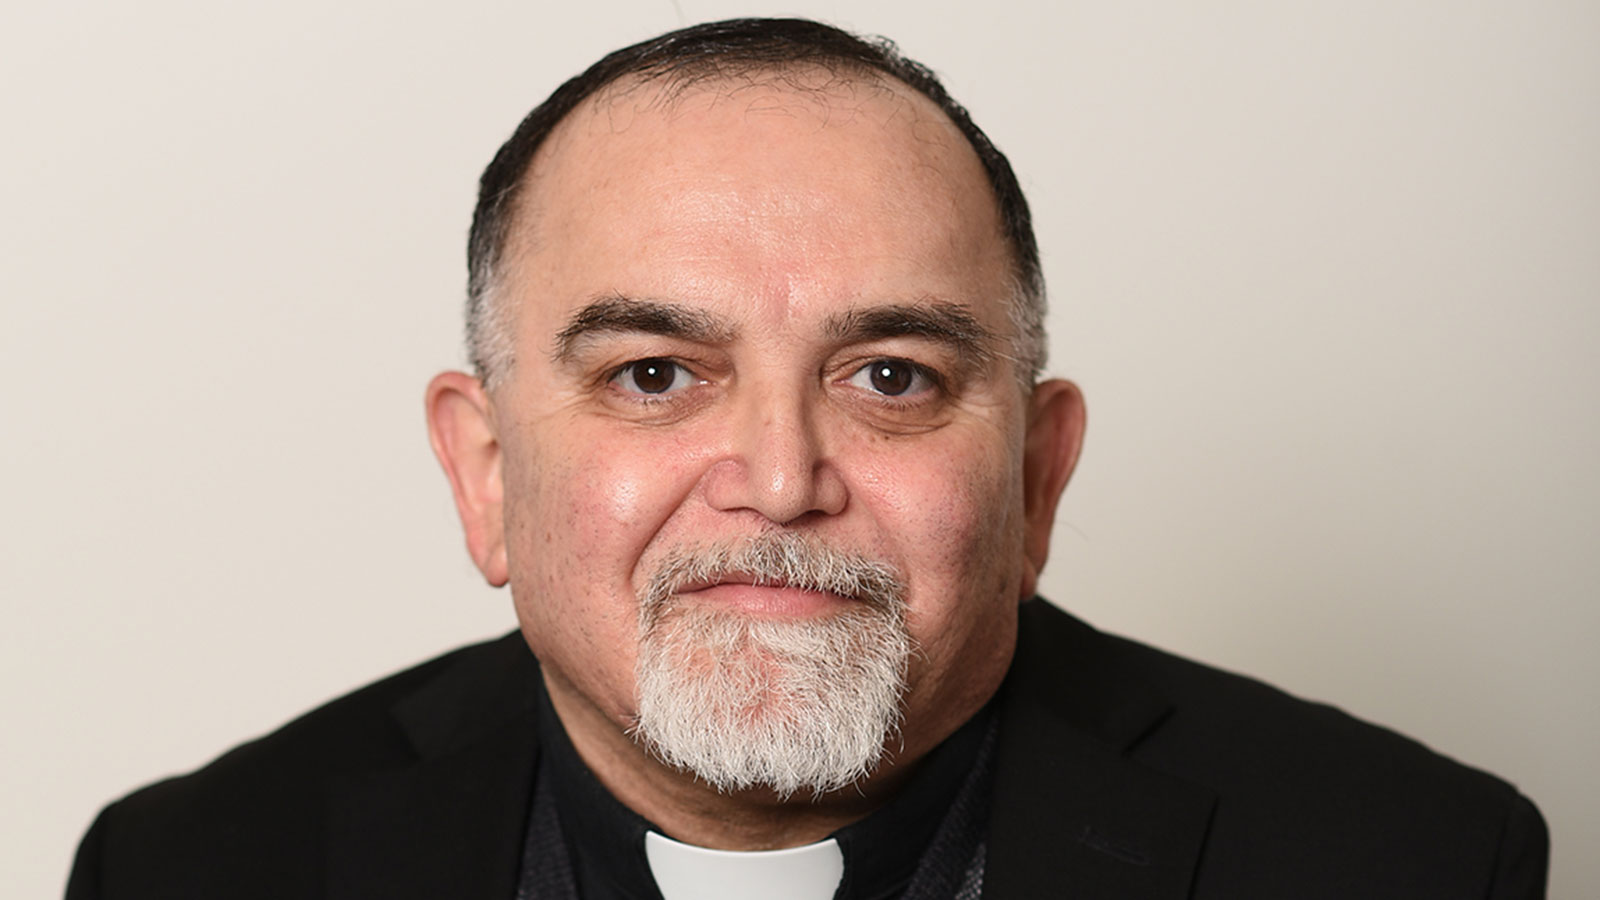 Church near hub of New York coronavirus outbreak mourns beloved priest this Easter